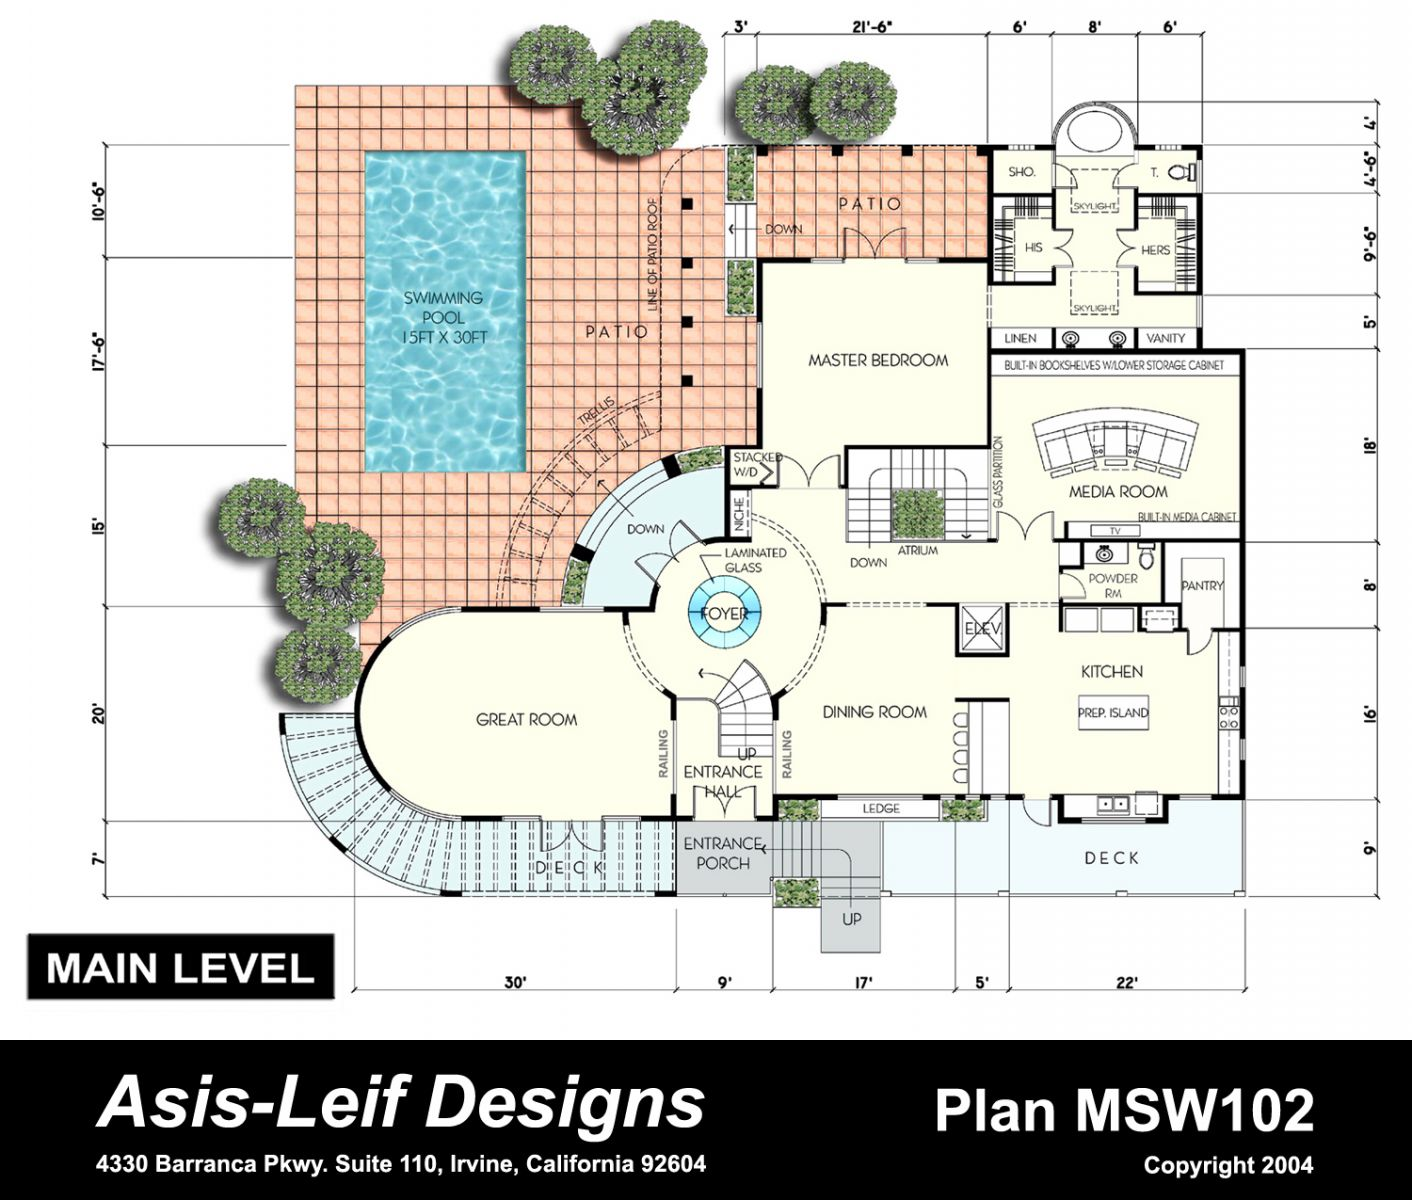 Create Home Plans Free Online,Best Paper Airplane Design For Distance Step By Step